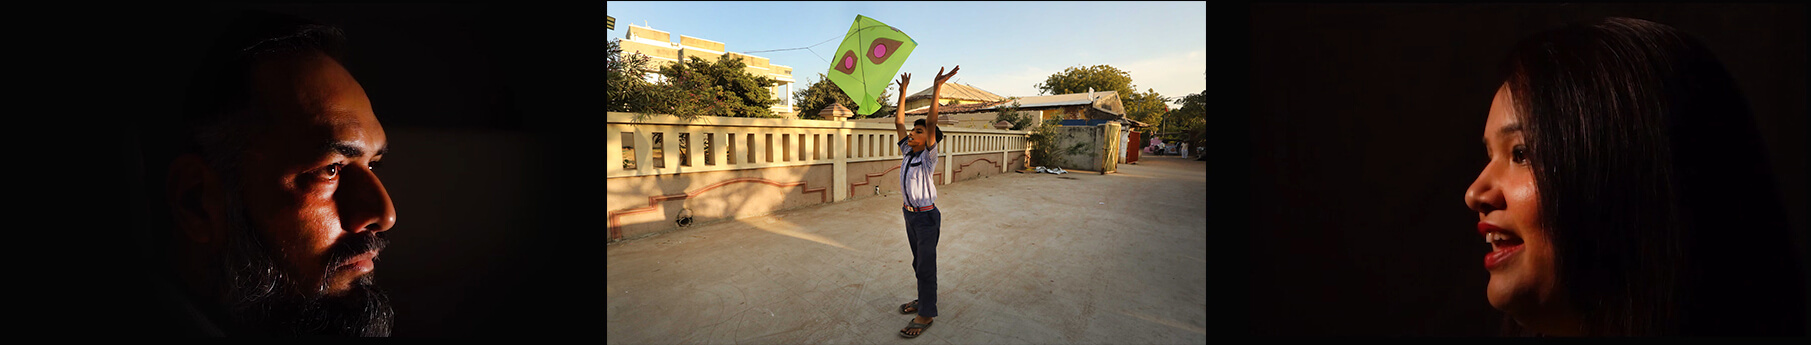 a man and a woman face each other either side of a boy playing outside with a kite